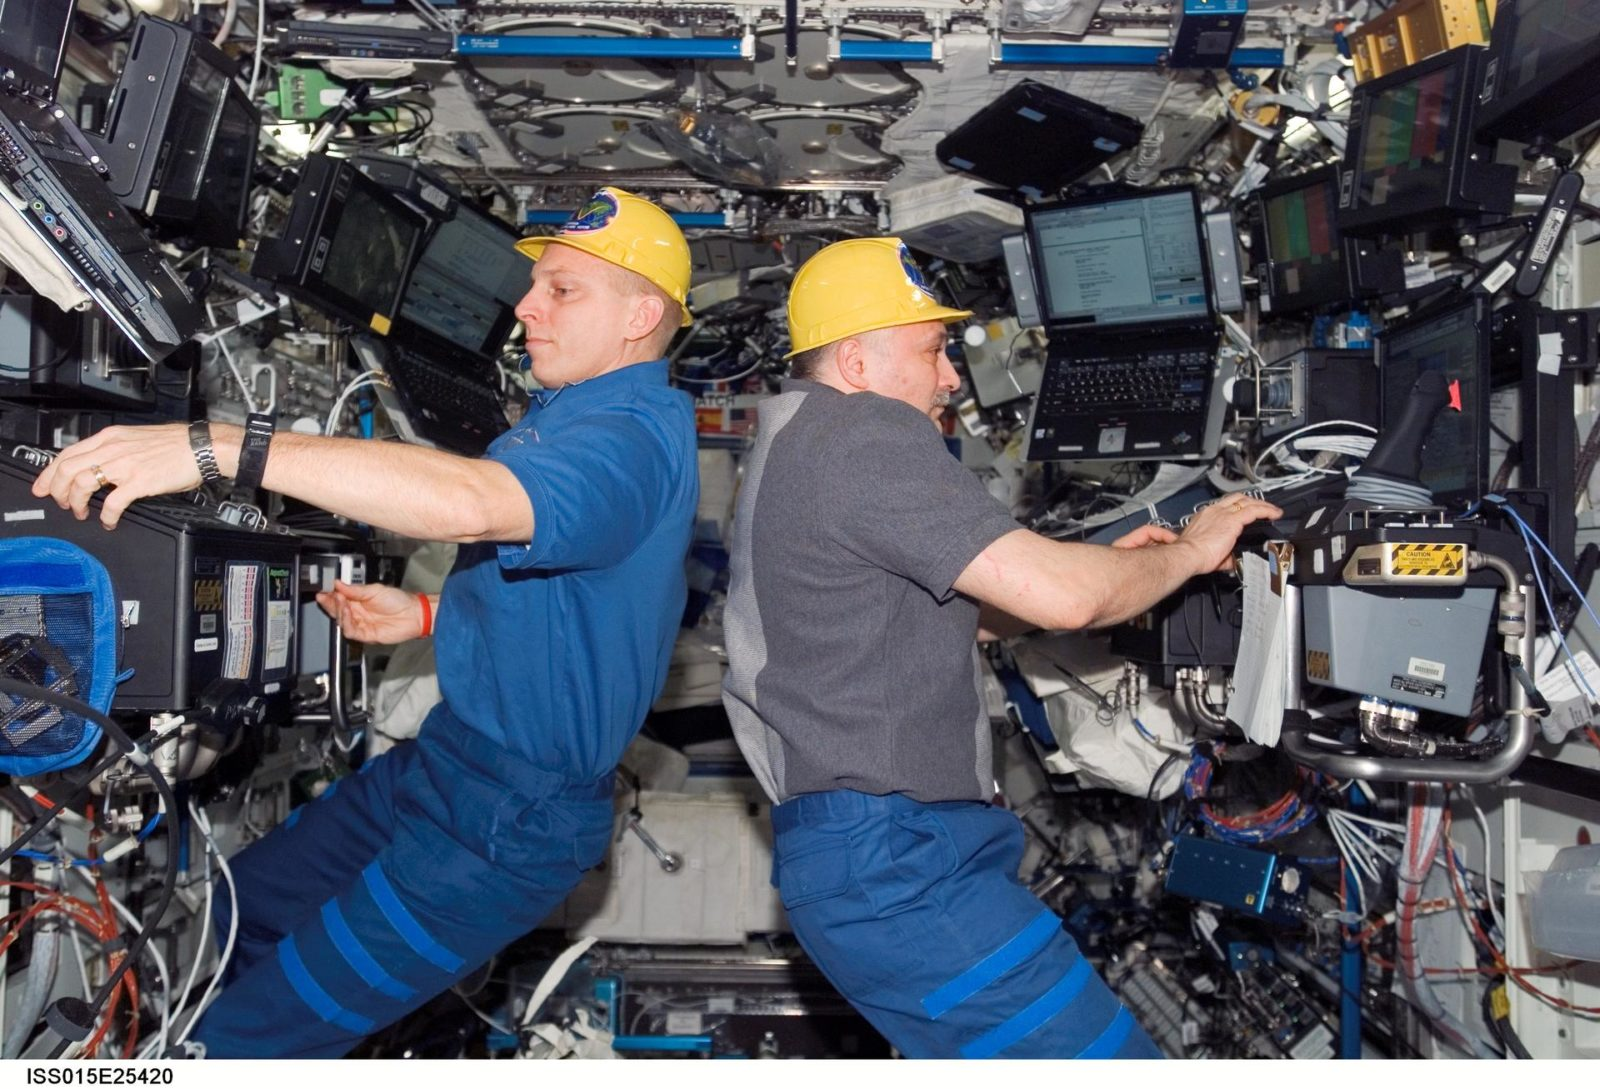 View of Anderson and Yurchikhin working in the US Lab during Expedition 15